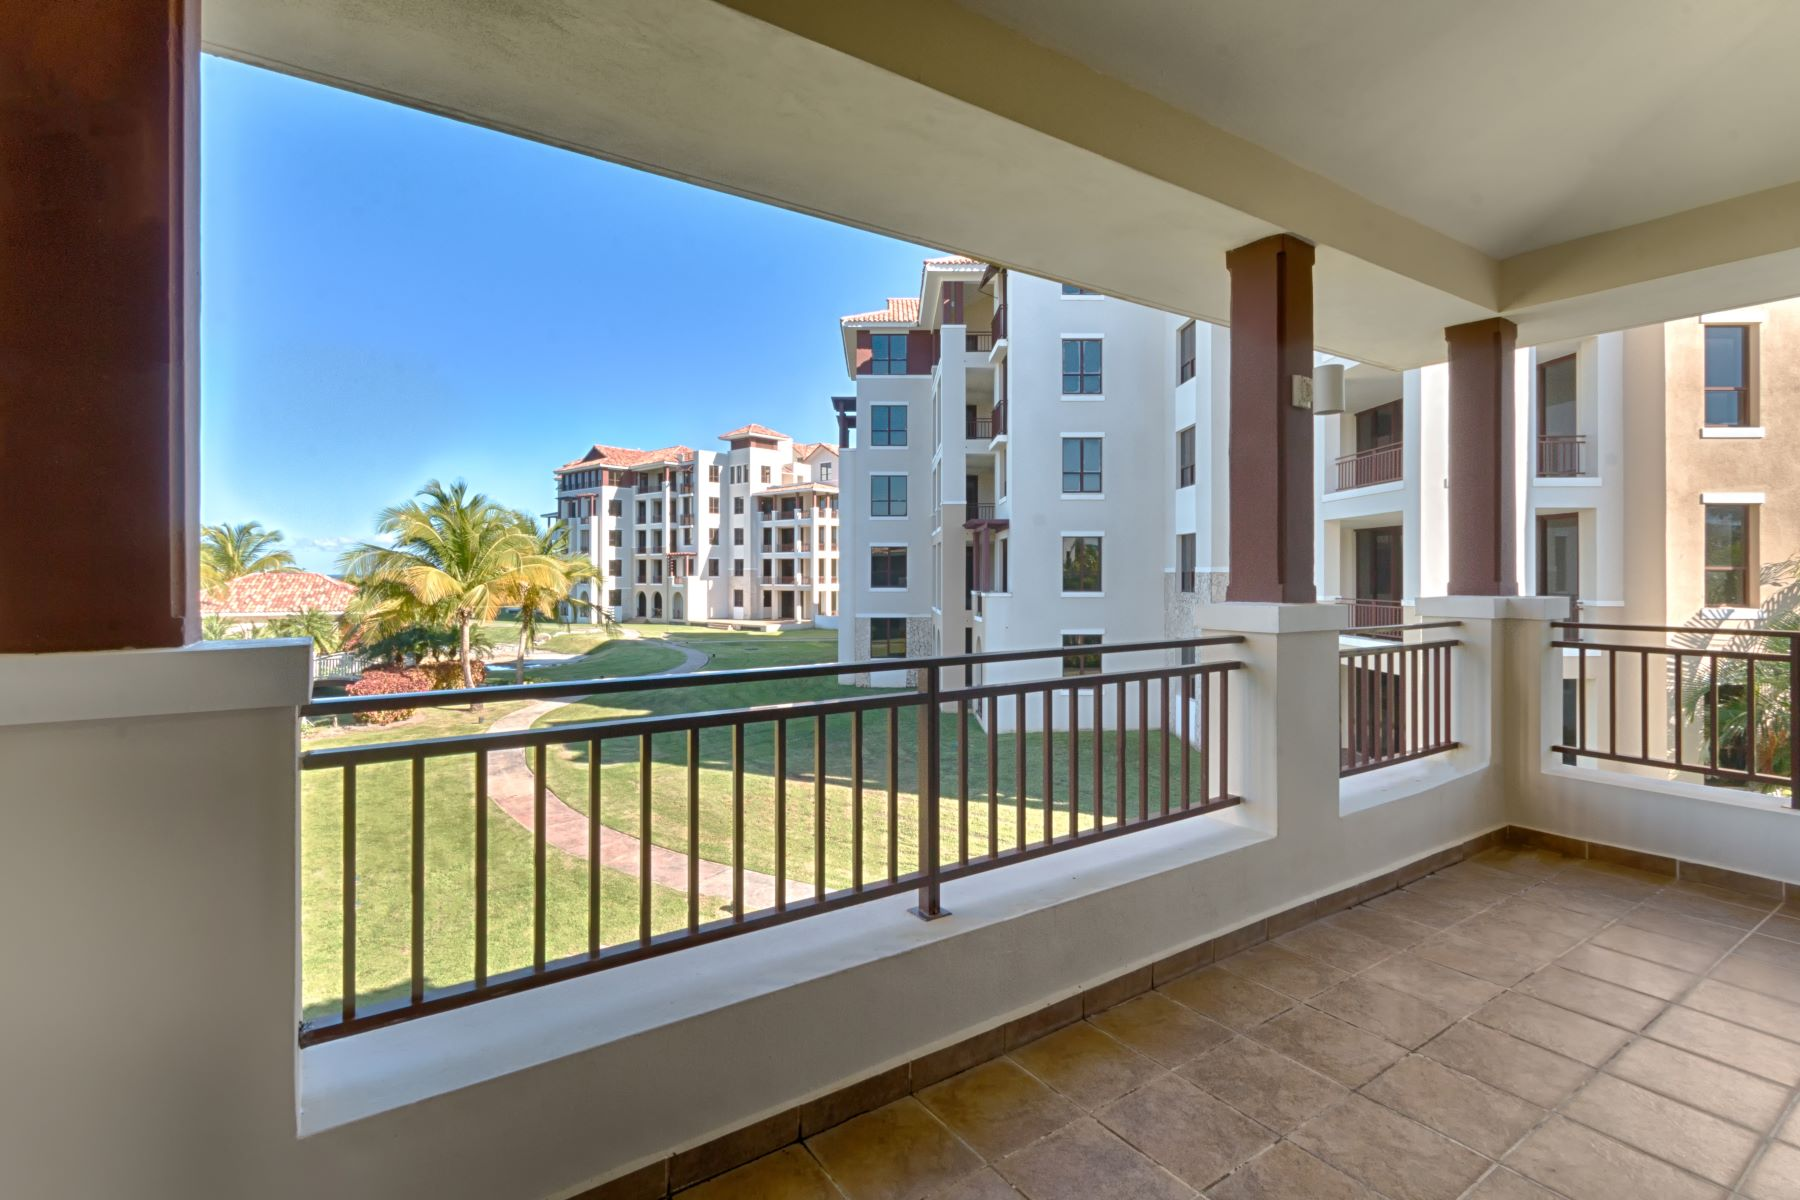 Additional photo for property listing at Residence 226 at 238 Candelero Drive 238 Candelero Drive, Apt 226 Solarea Beach Resort and Yacht Club Palmas Del Mar, 00791 Puerto Rico